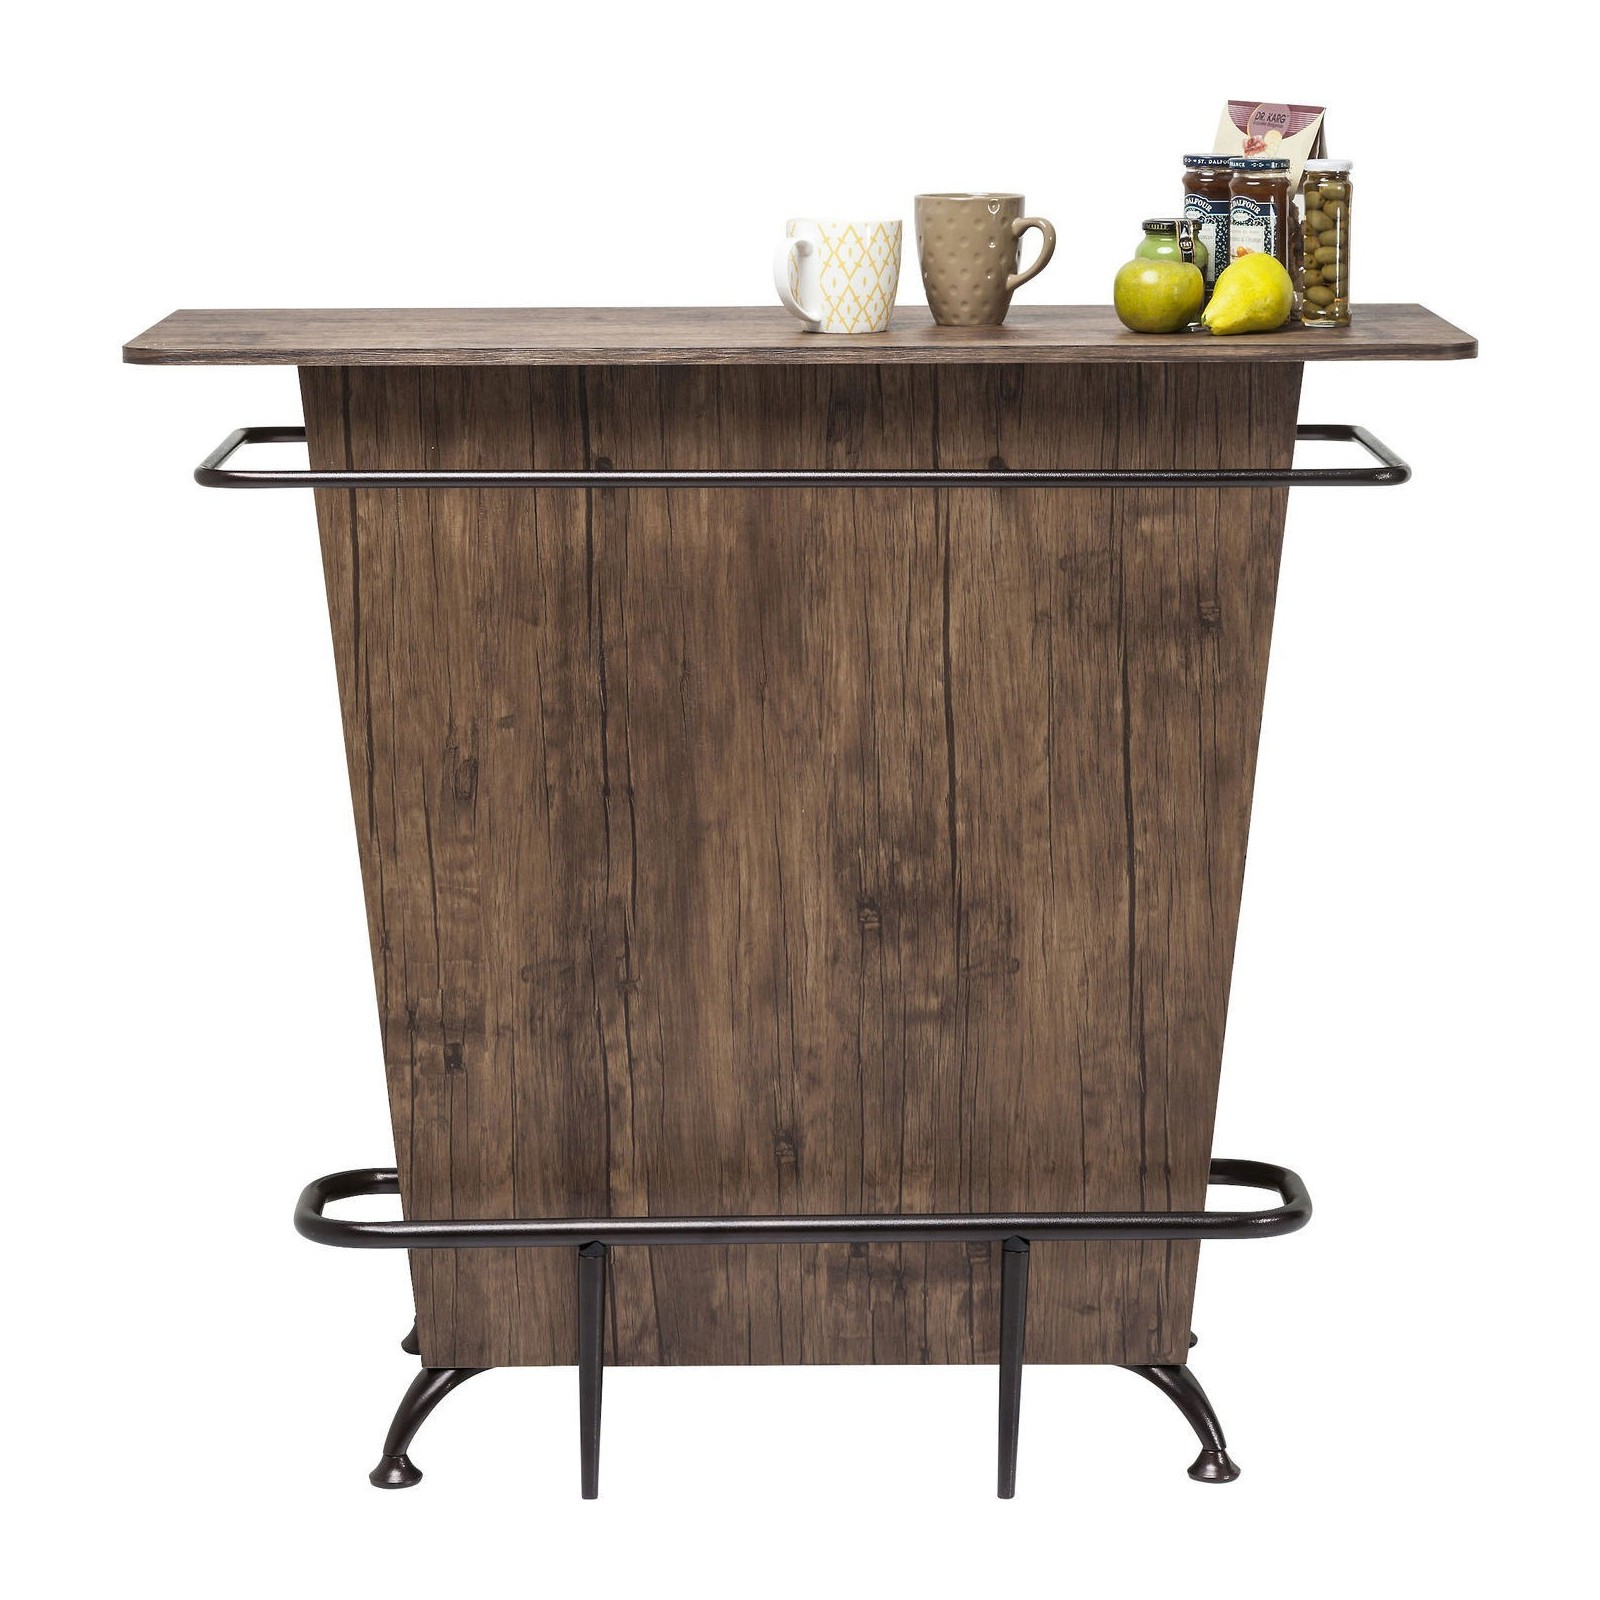 Bar rustique bois lady rock walnut kare design for Meuble sous bar